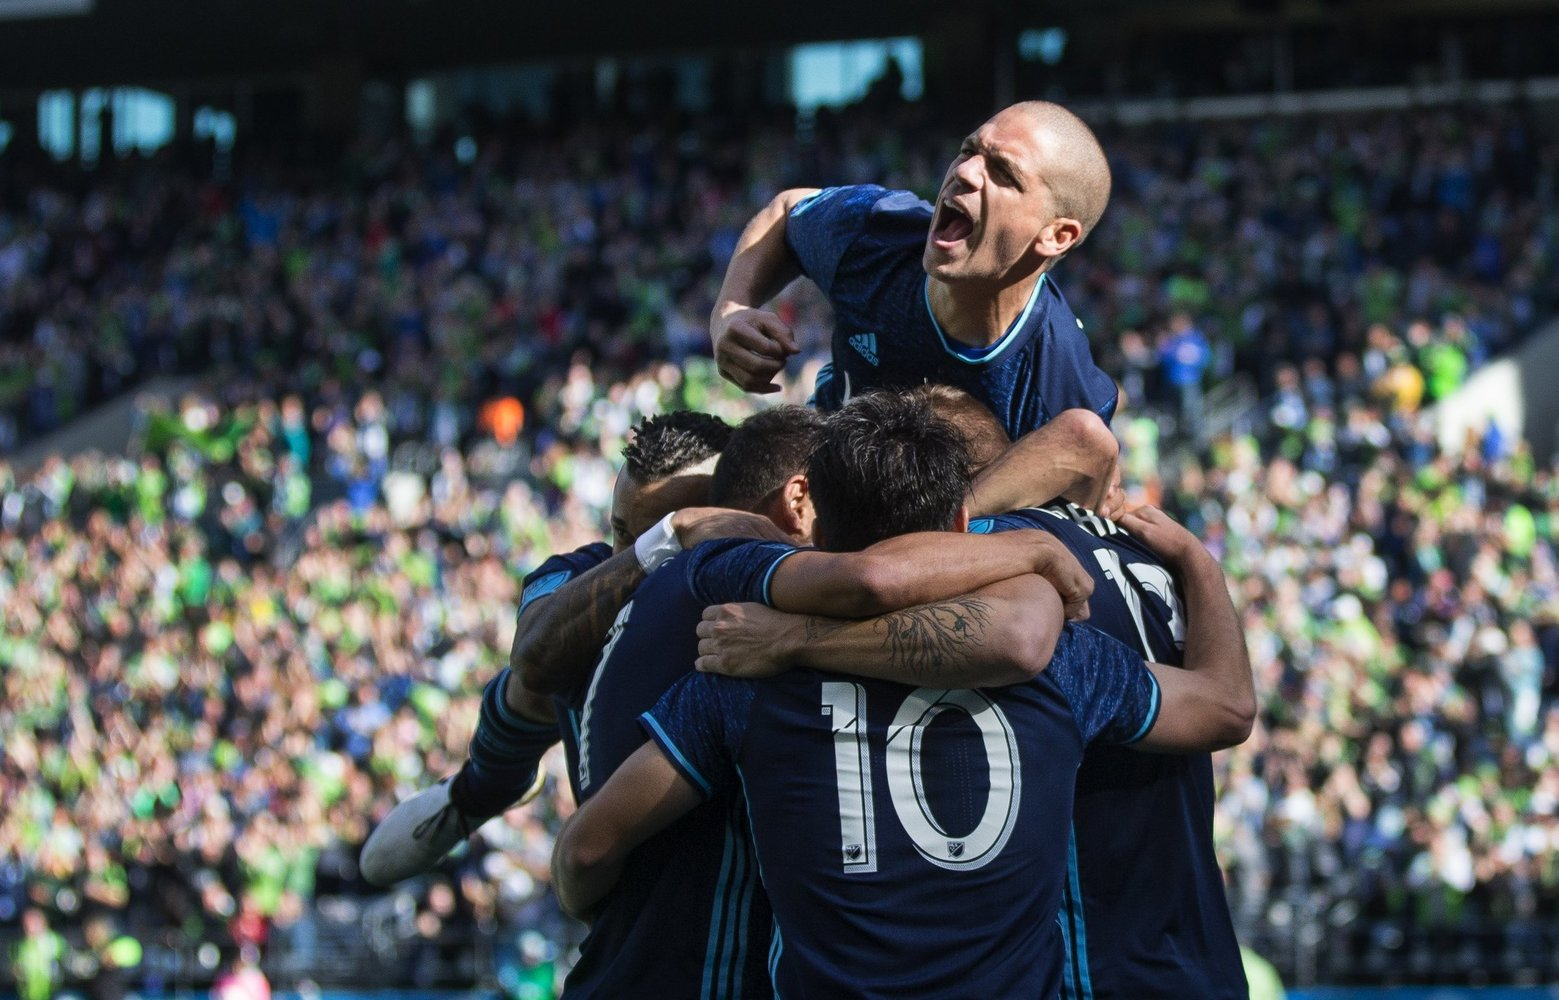 Seattle Sounders midfielder Osvaldo Alonso jumps onto a circle of his teammates as they celebrate striking first on a goal from midfielder Alvaro Fernandez in the first half. (Lindsey Wasson / The Seattle Times)